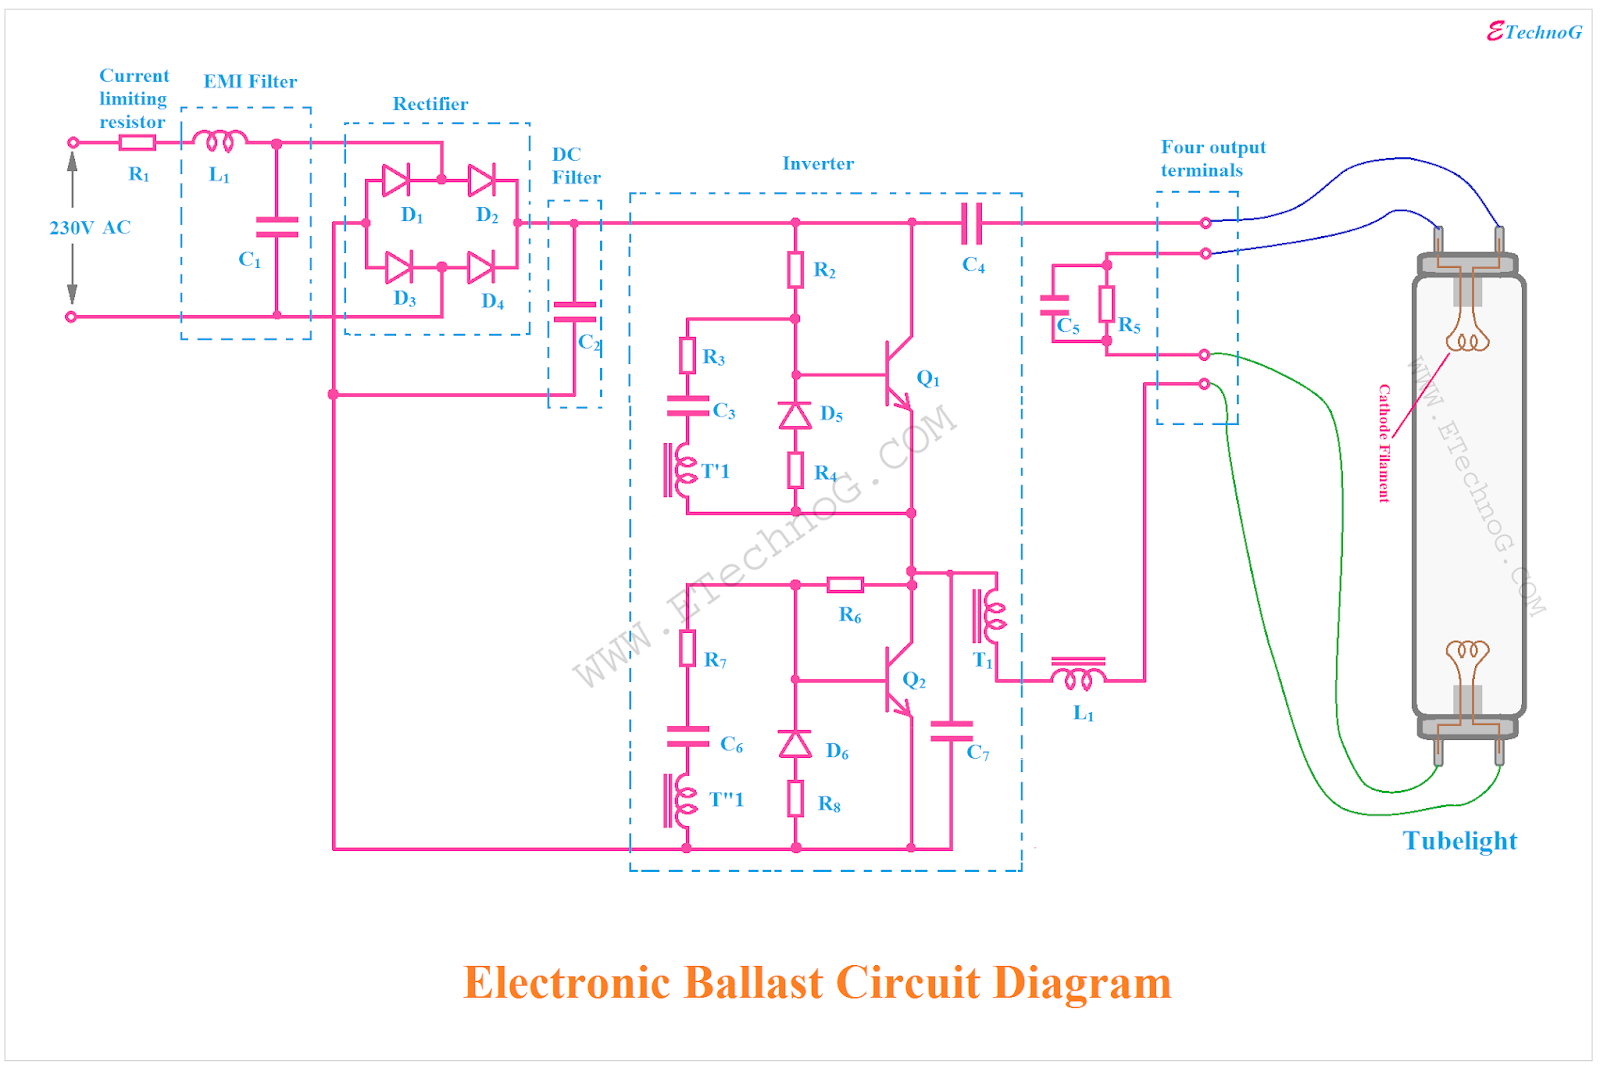 medium resolution of explained electronic ballast circuit diagram and working etechnog electronic ballast circuit diagram on electronic choke circuit diagram